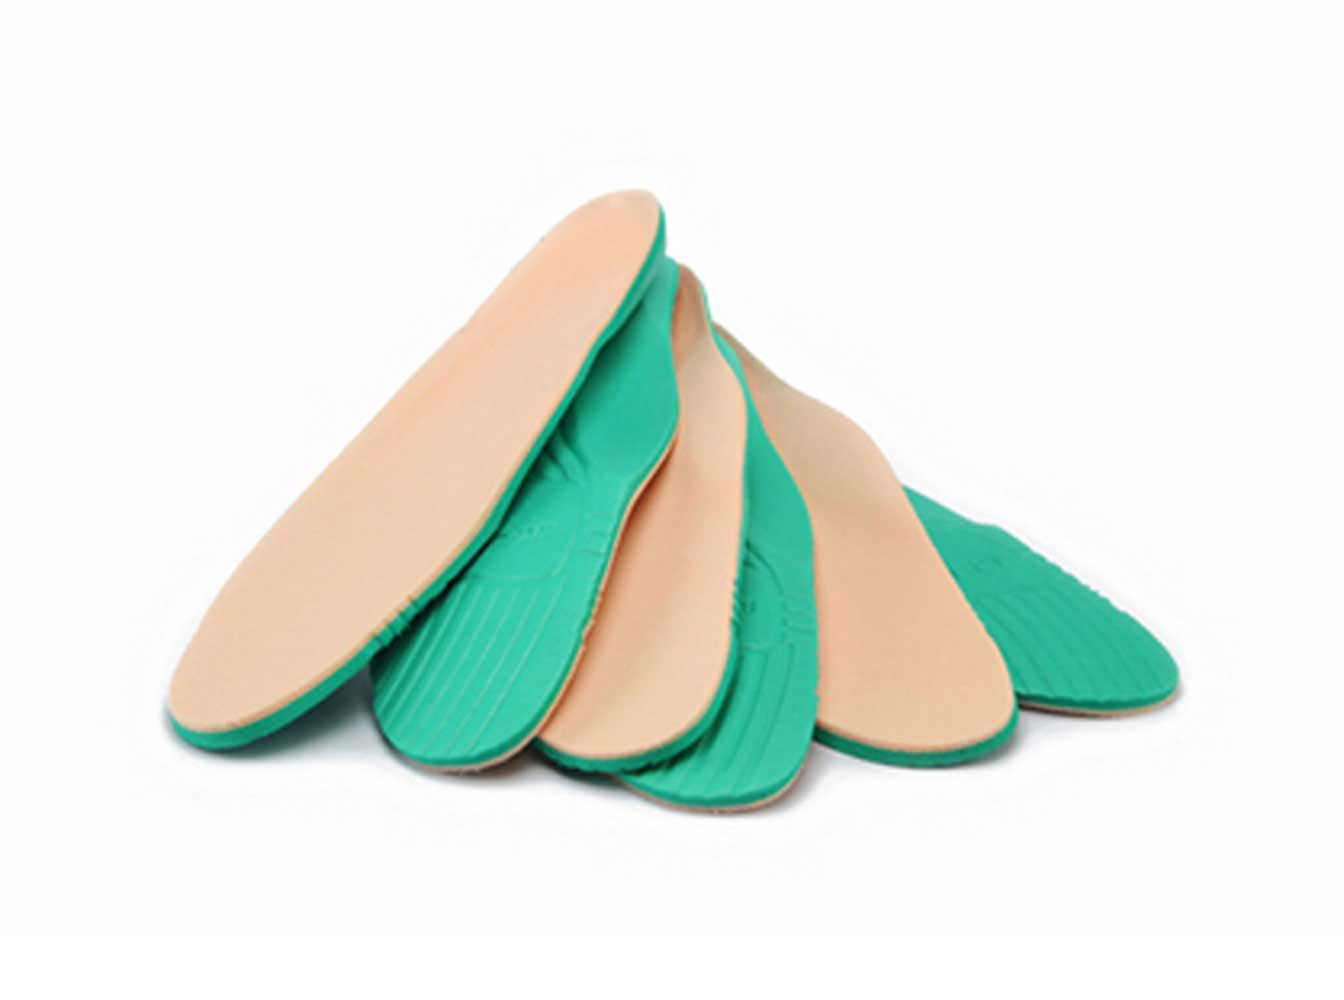 Apis Mt. Emey - Medium to 9E - Prefabricated HCPCS A5512 Inserts for Diabetic & Extra Depth Shoes